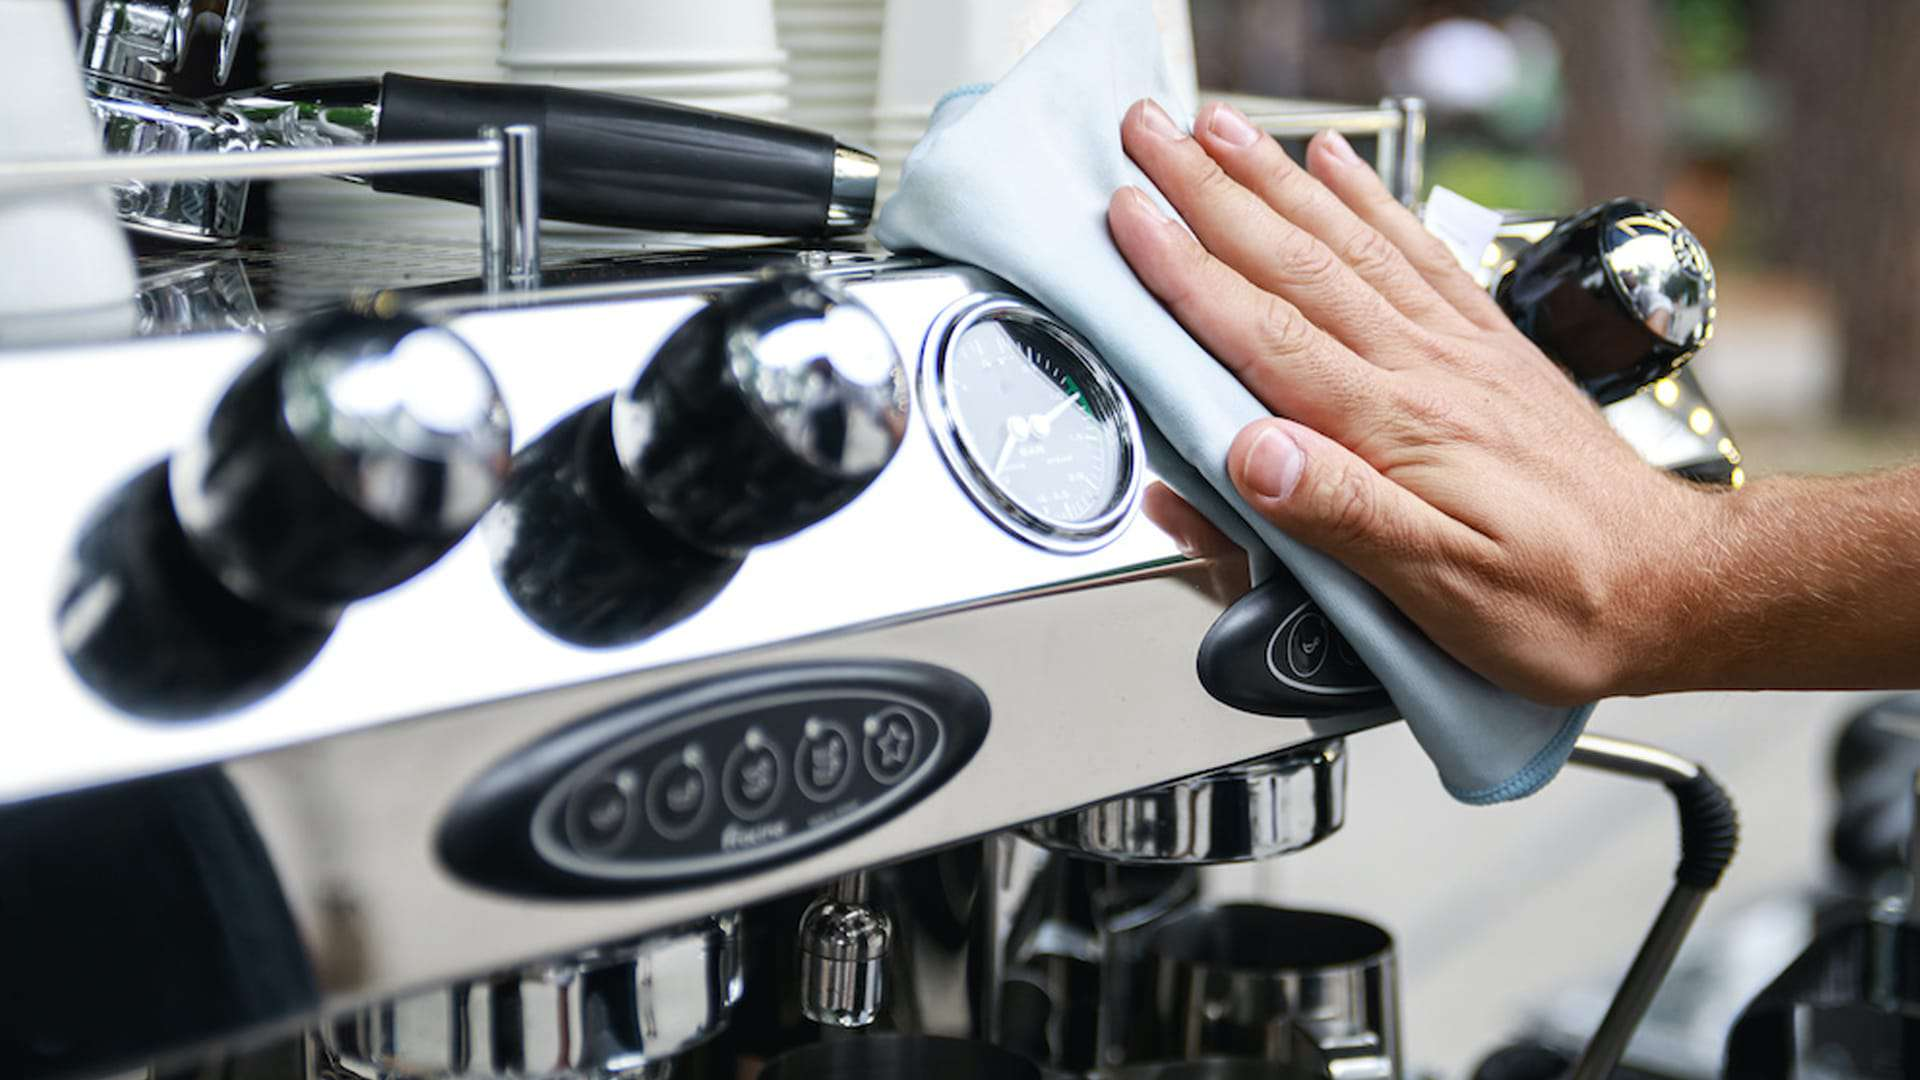 how to clean the inside of a coffee maker